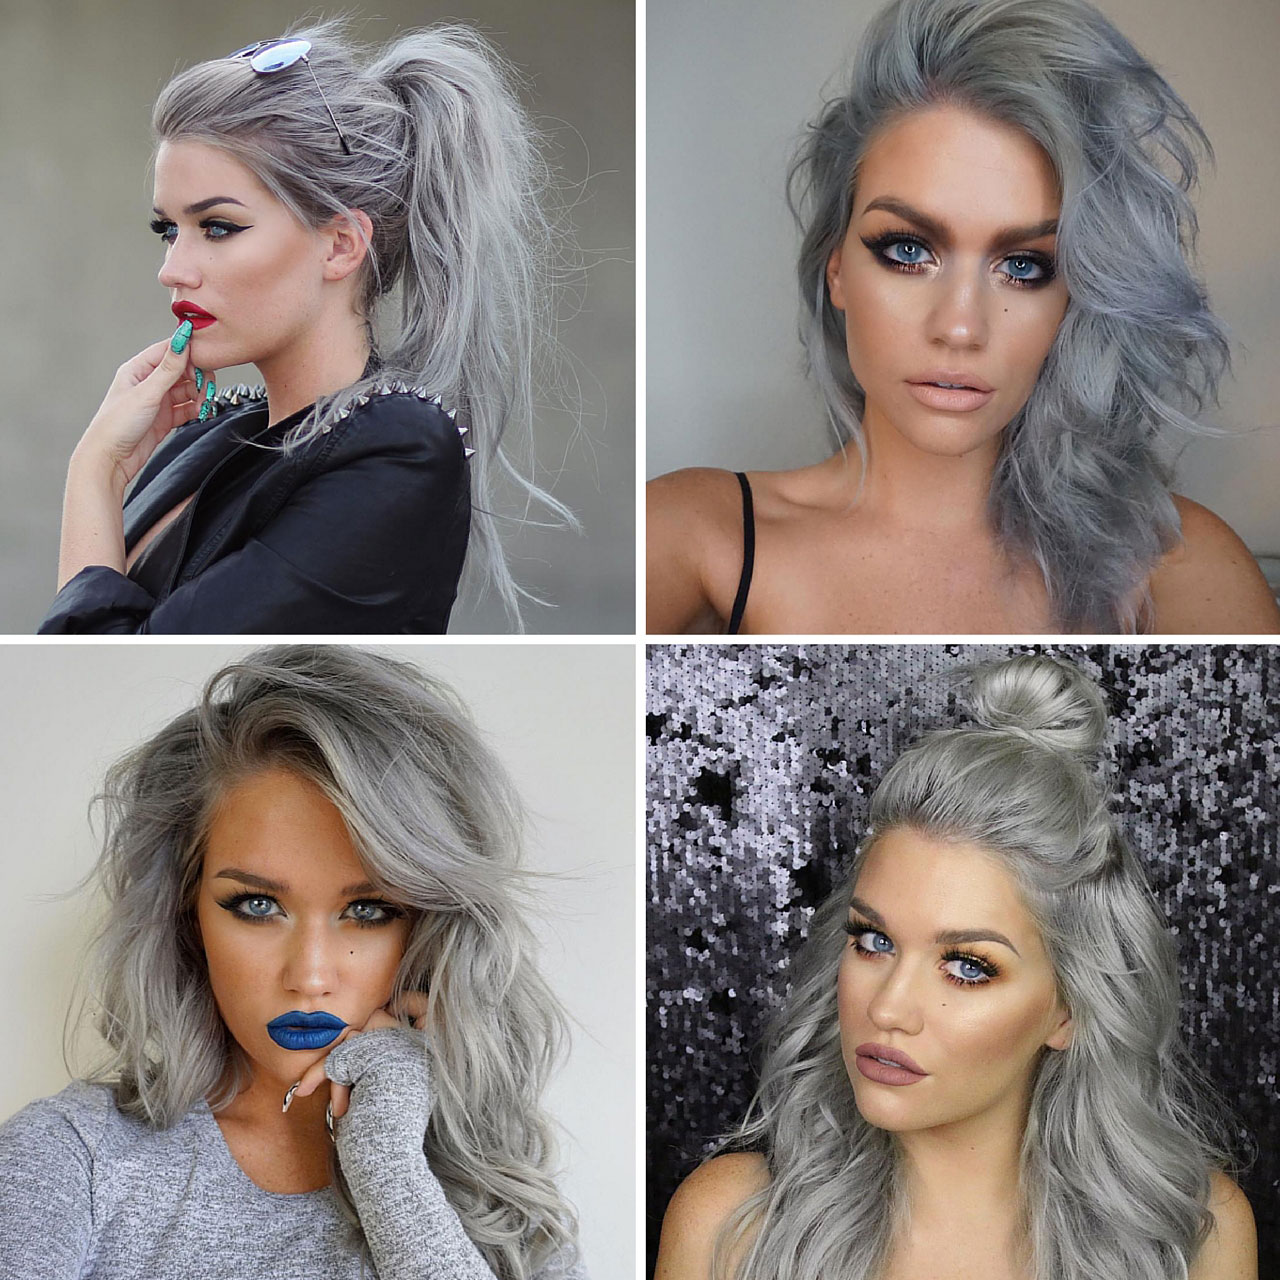 Silver Lining Fashion Book - Top 5 Hair Color Trends For 2016